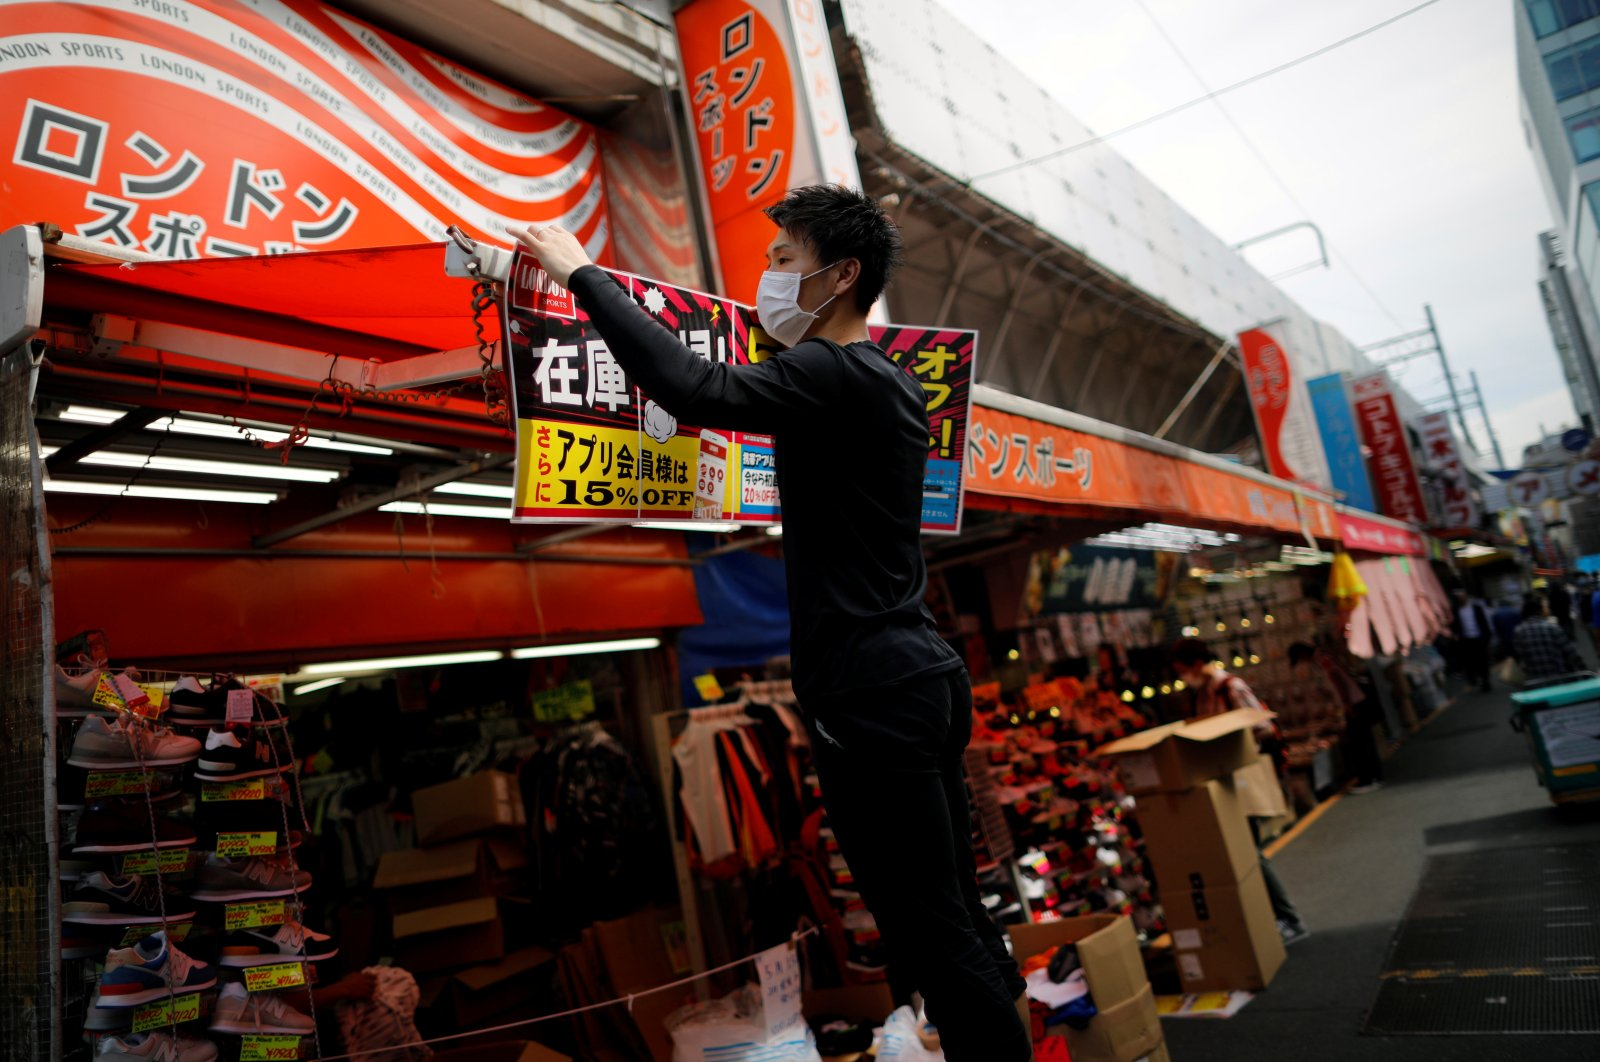 An employee of a shoe shop prepares to reopen the business during the spread of the coronavirus in Tokyo, Japan, May 14, 2020. (Reuters Photo)